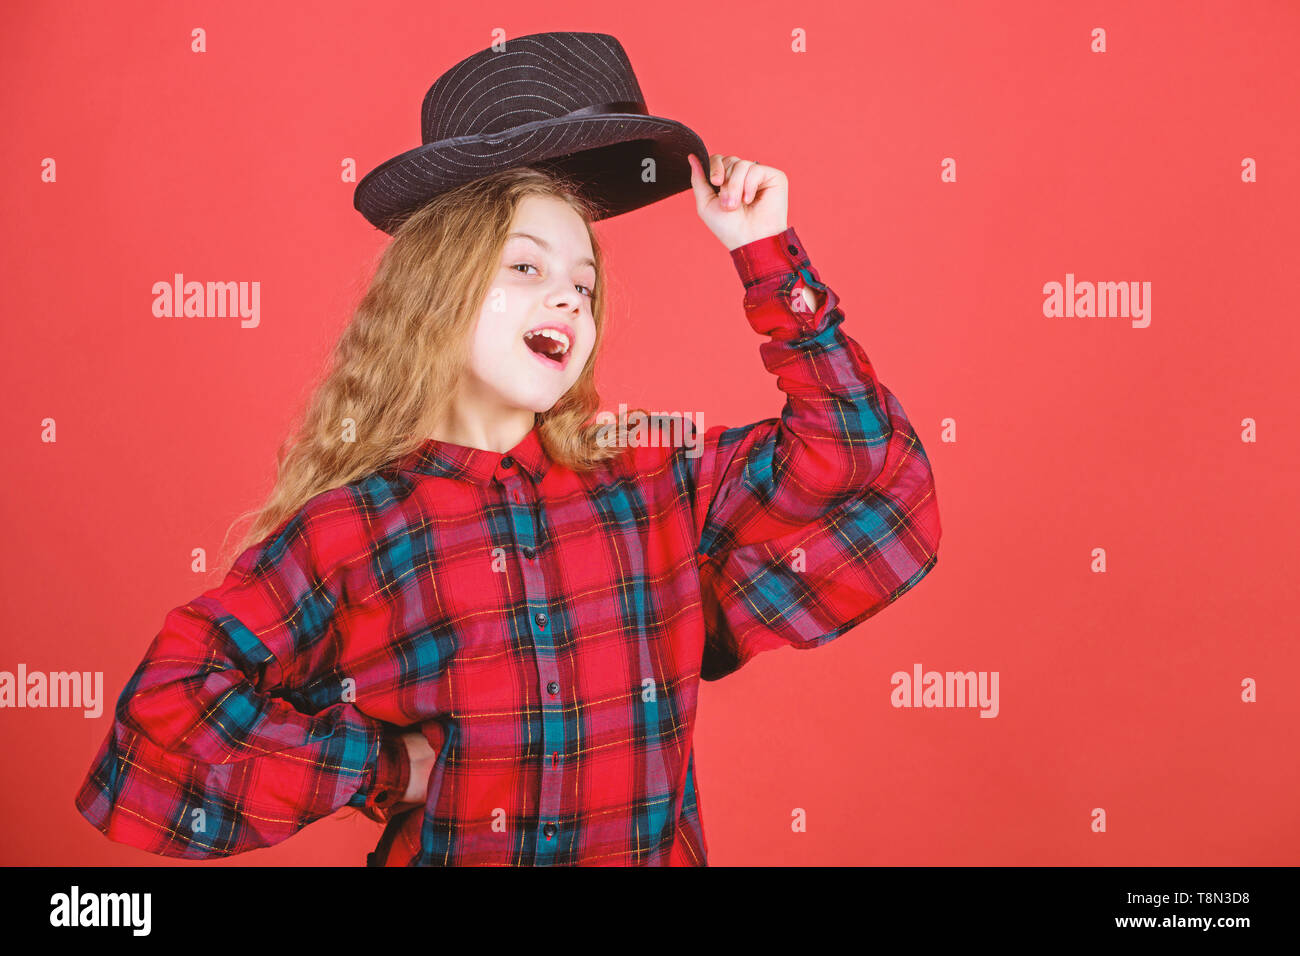 Acting school for children. Acting lessons guide children through wide variety of genres. Develop talent into career. Girl artistic kid practicing acting skills with black hat. Enter acting academy. - Stock Image